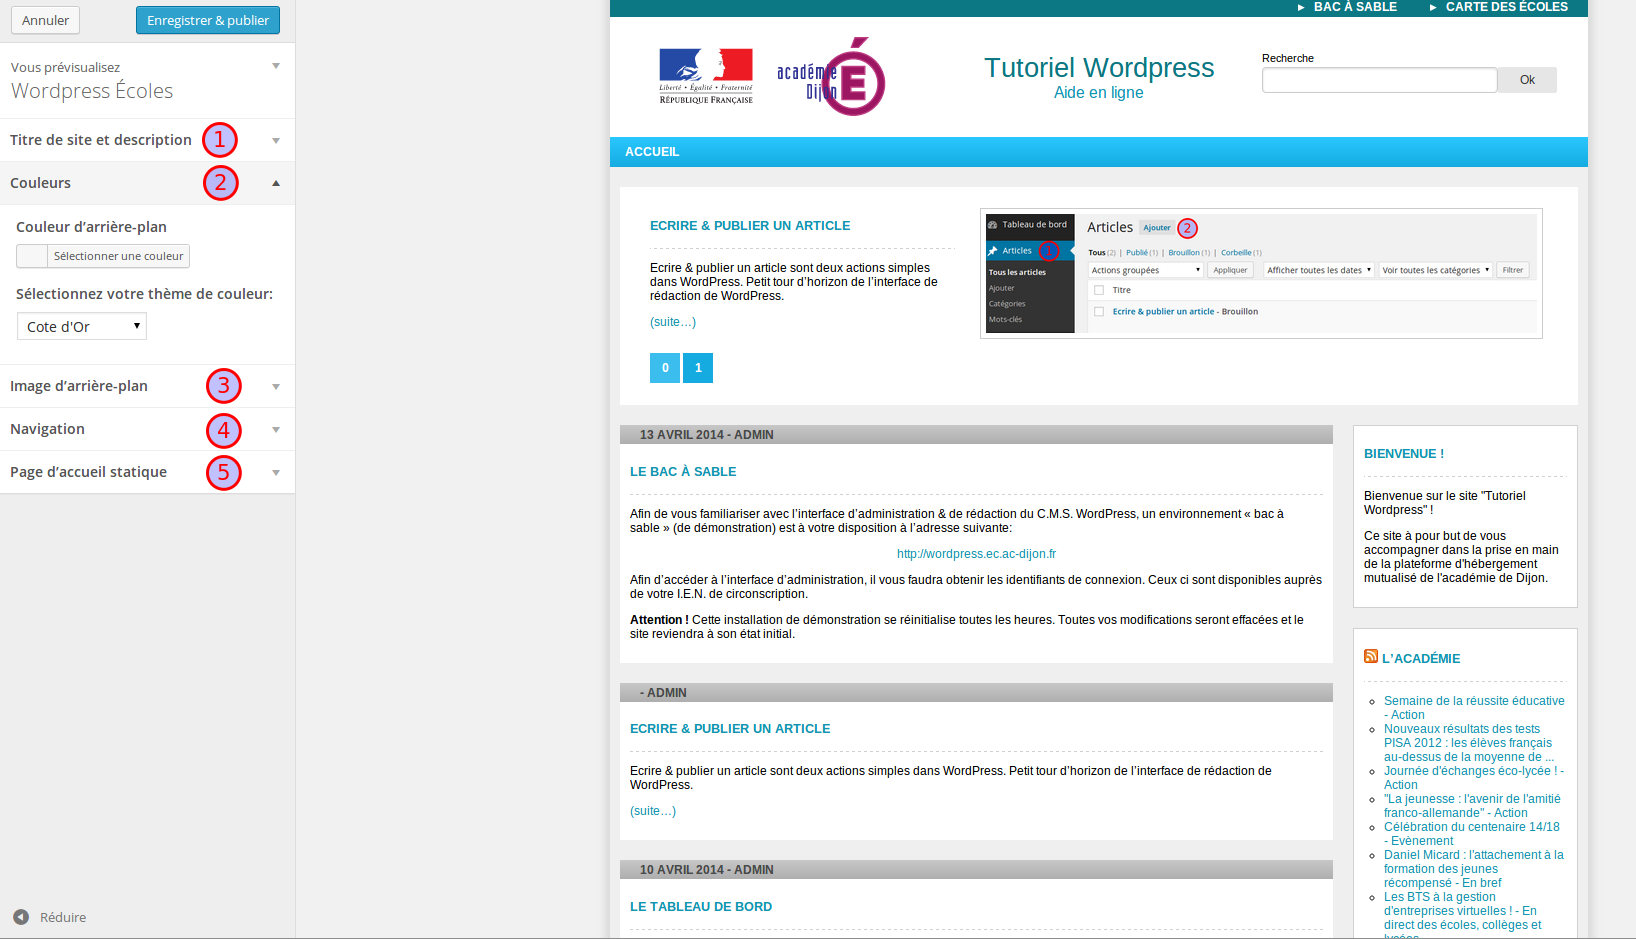 L'interface de personnalisation de WordPress